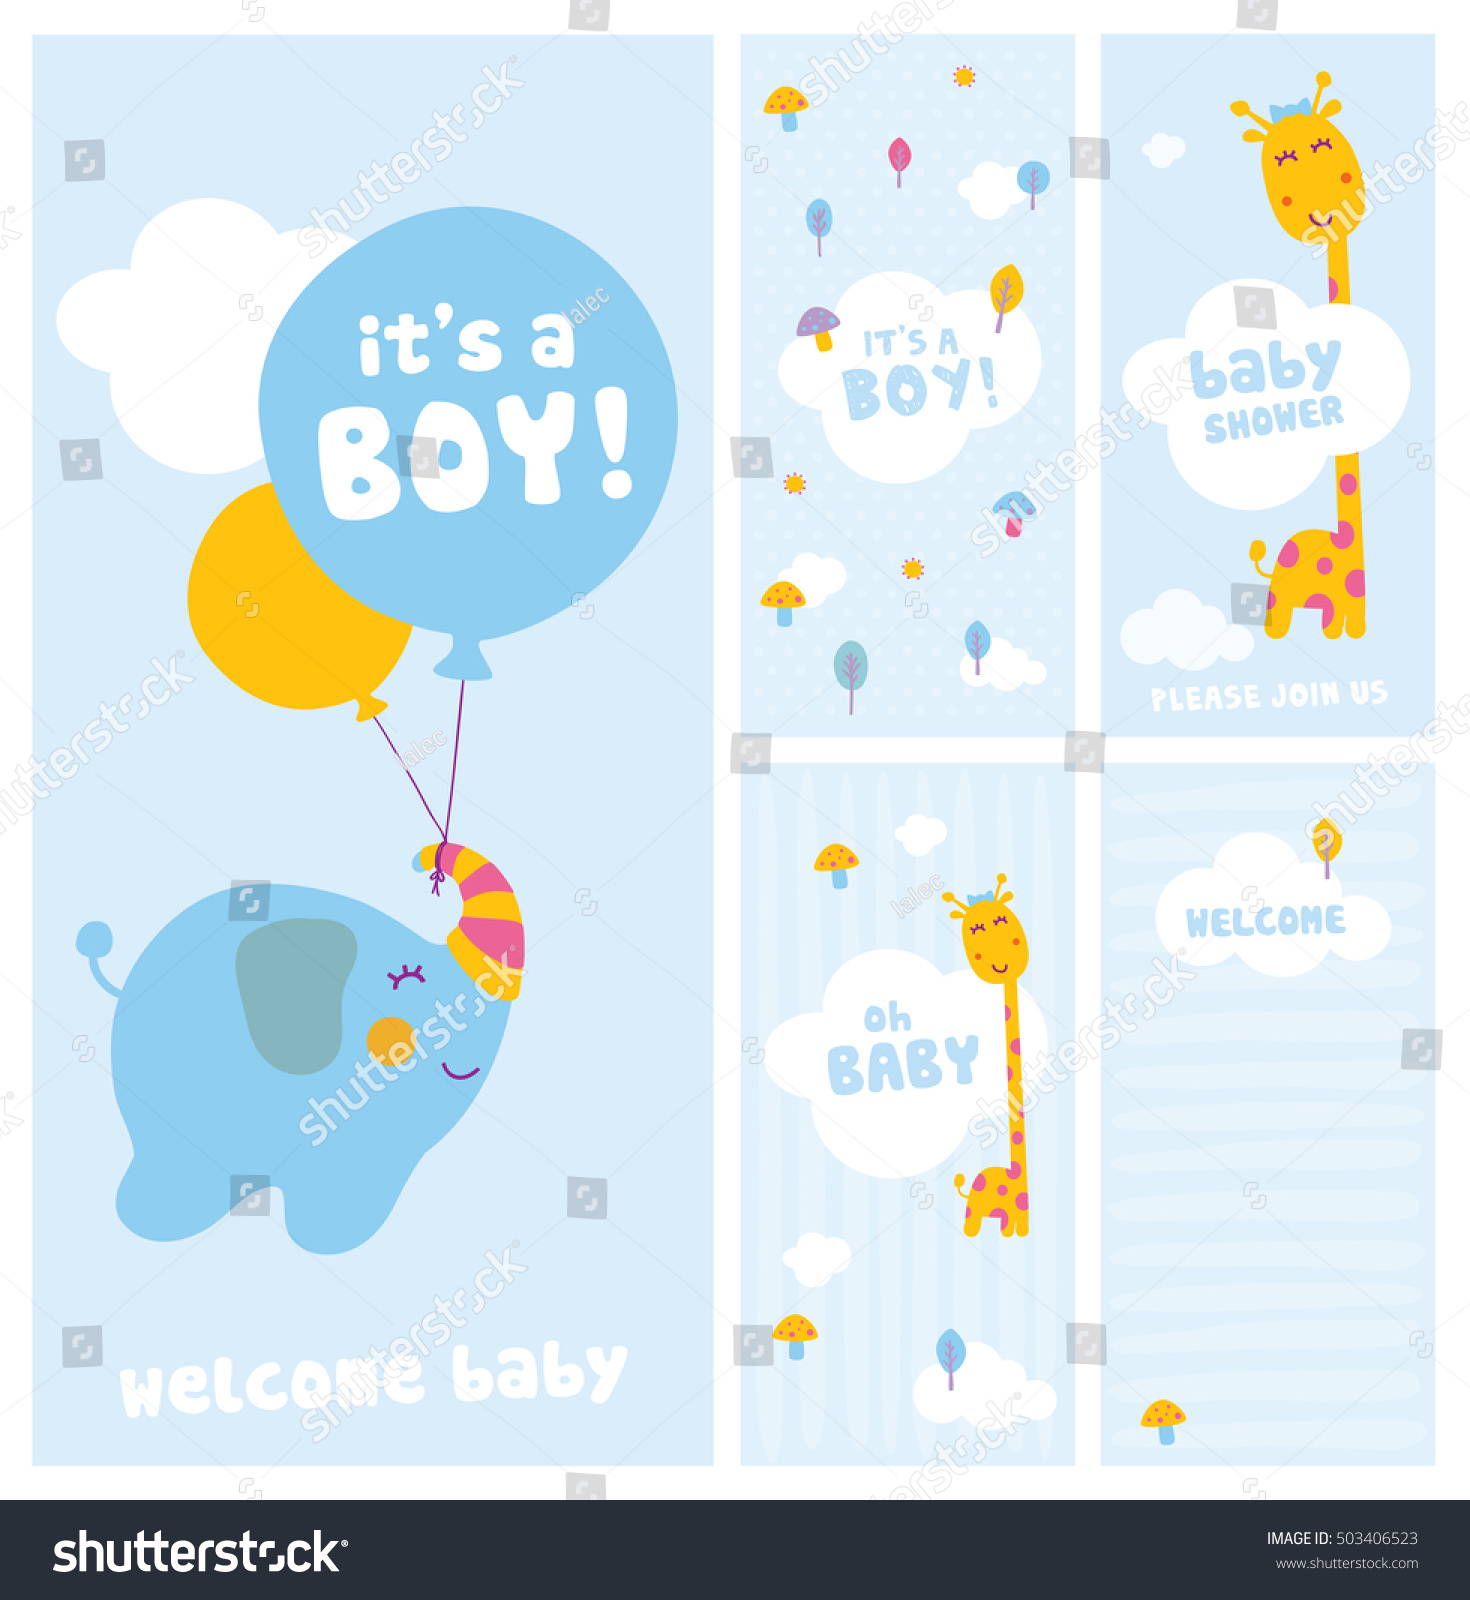 Boy Baby Shower Wel e Cards Stock Vector Shutterstock